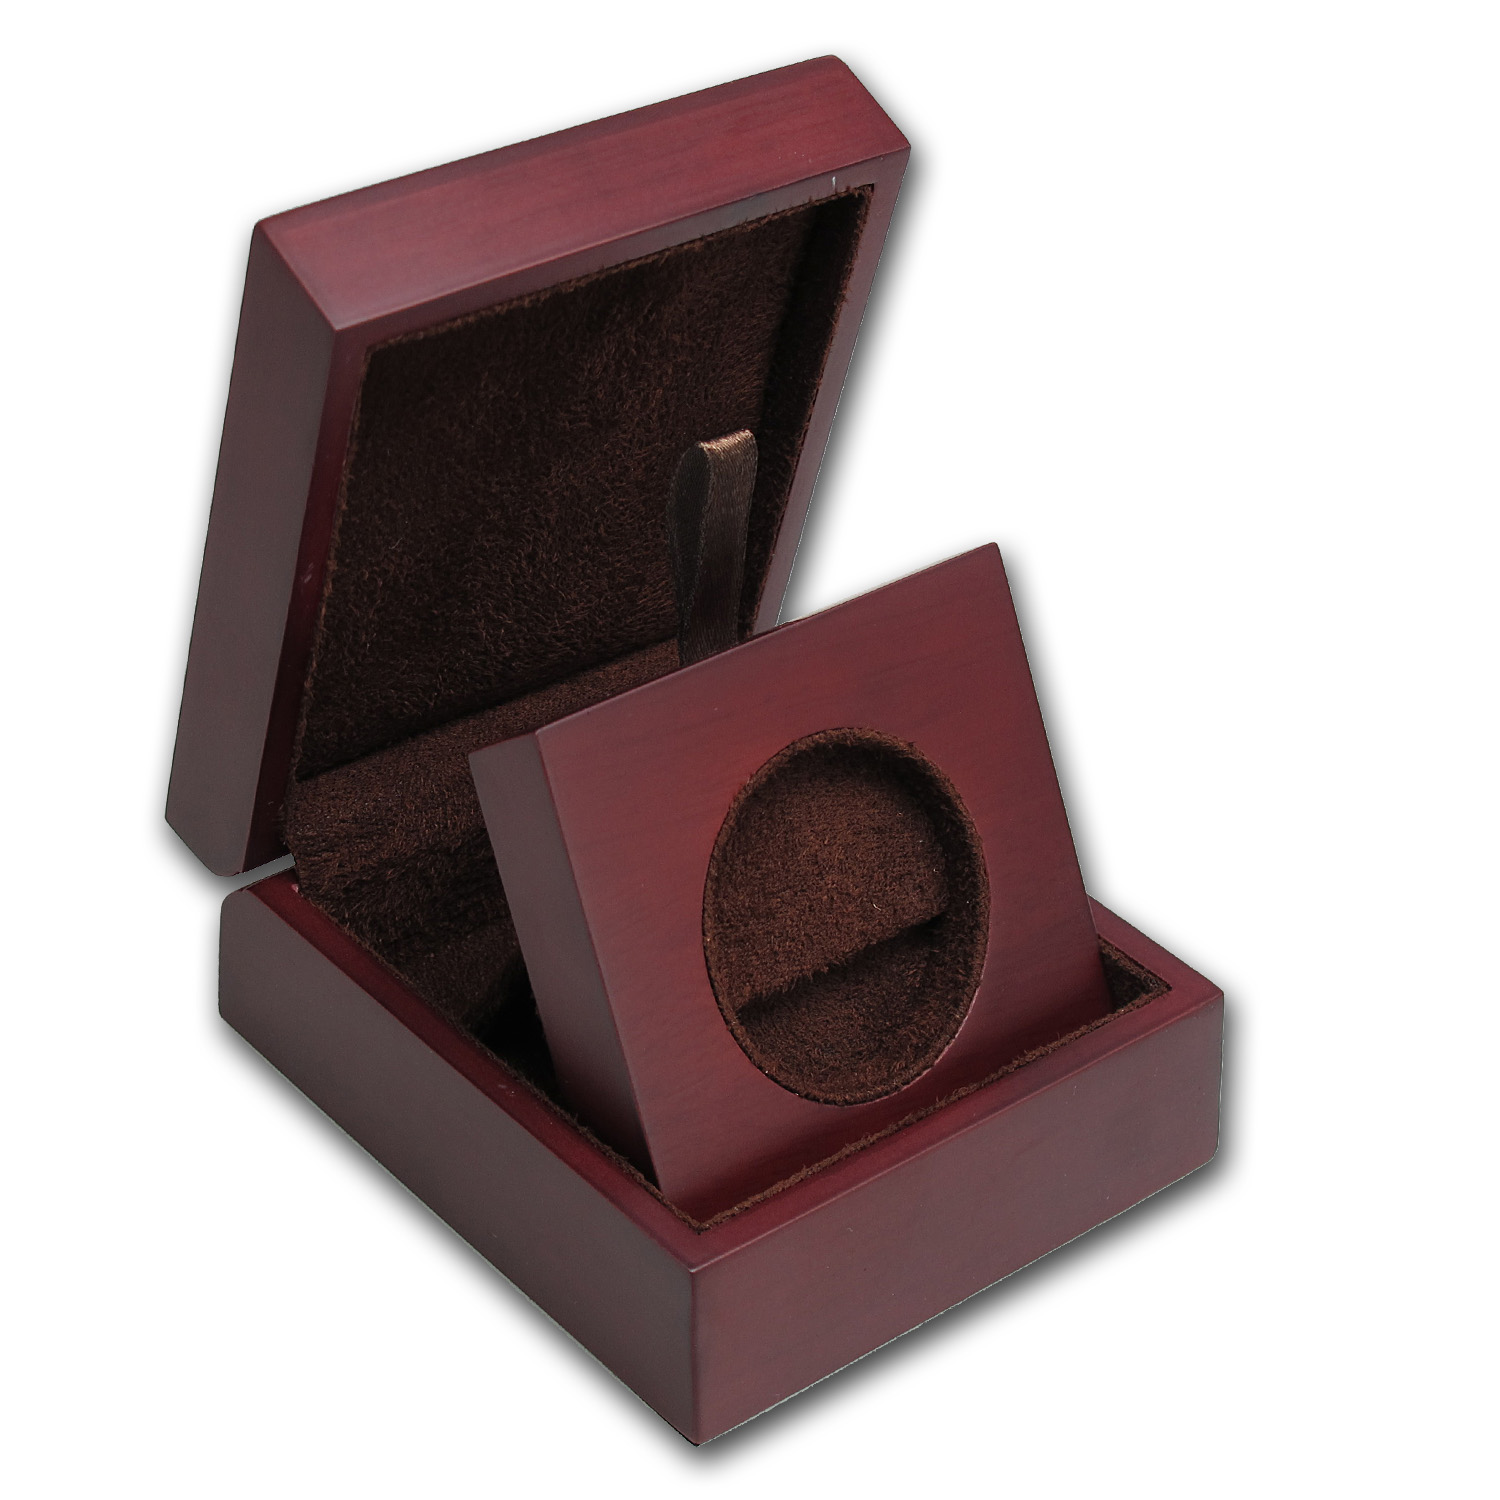 APMEX Wood Presentation Box - Fits Miscellaneous Gold & Silver